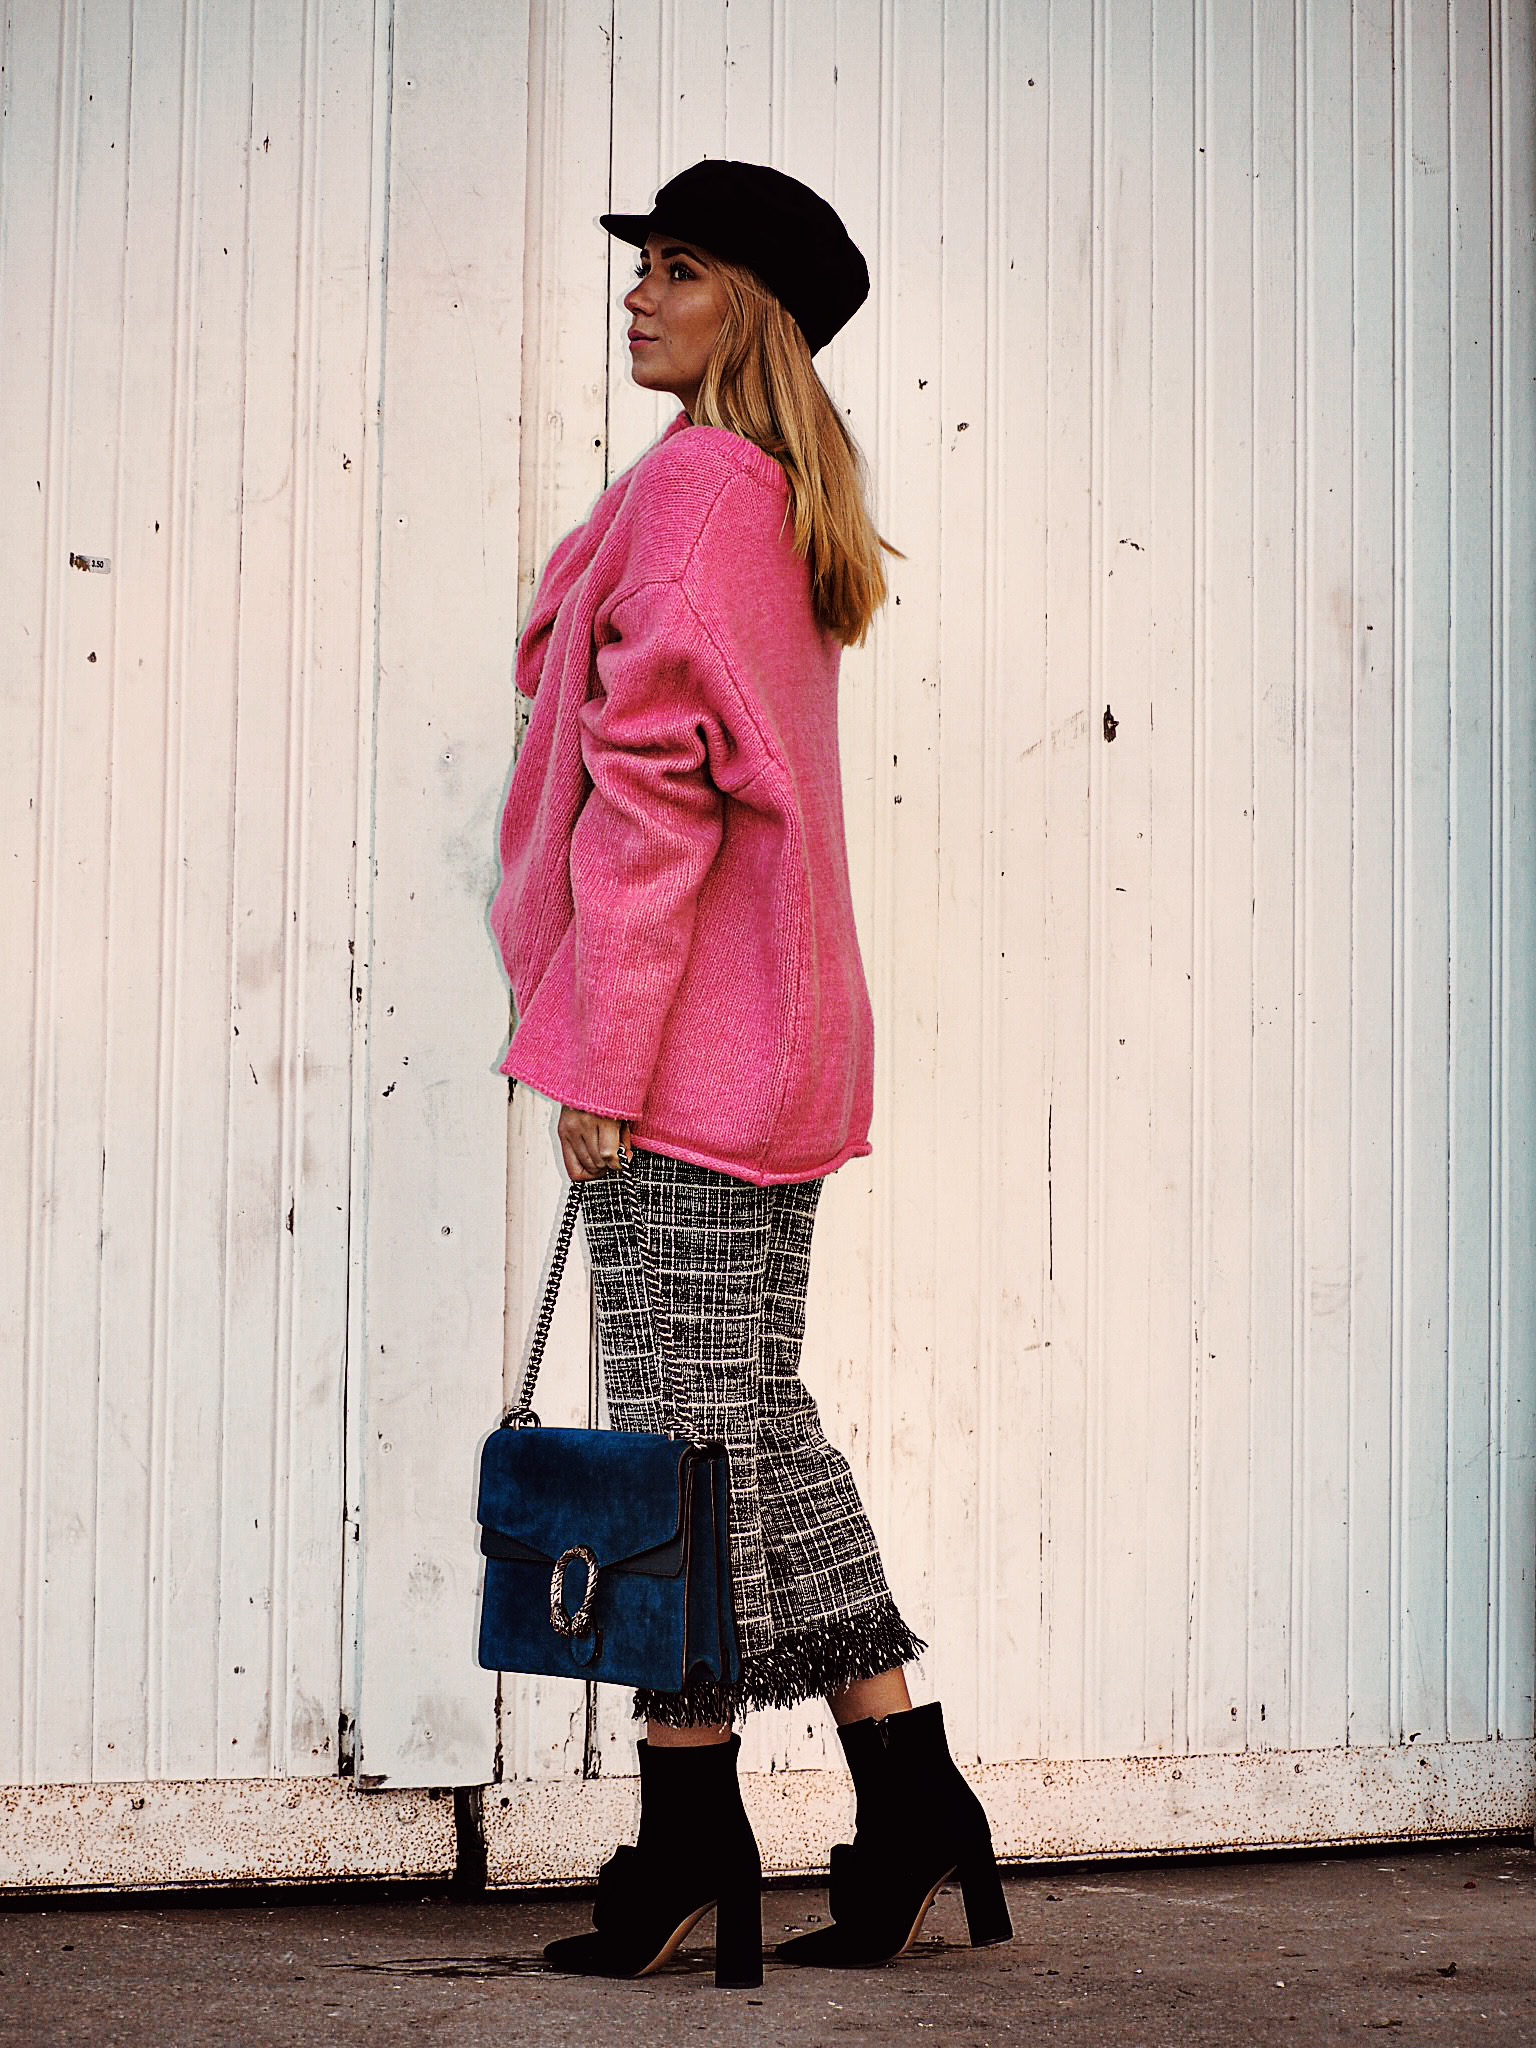 Outfit: pink sweater & culottes